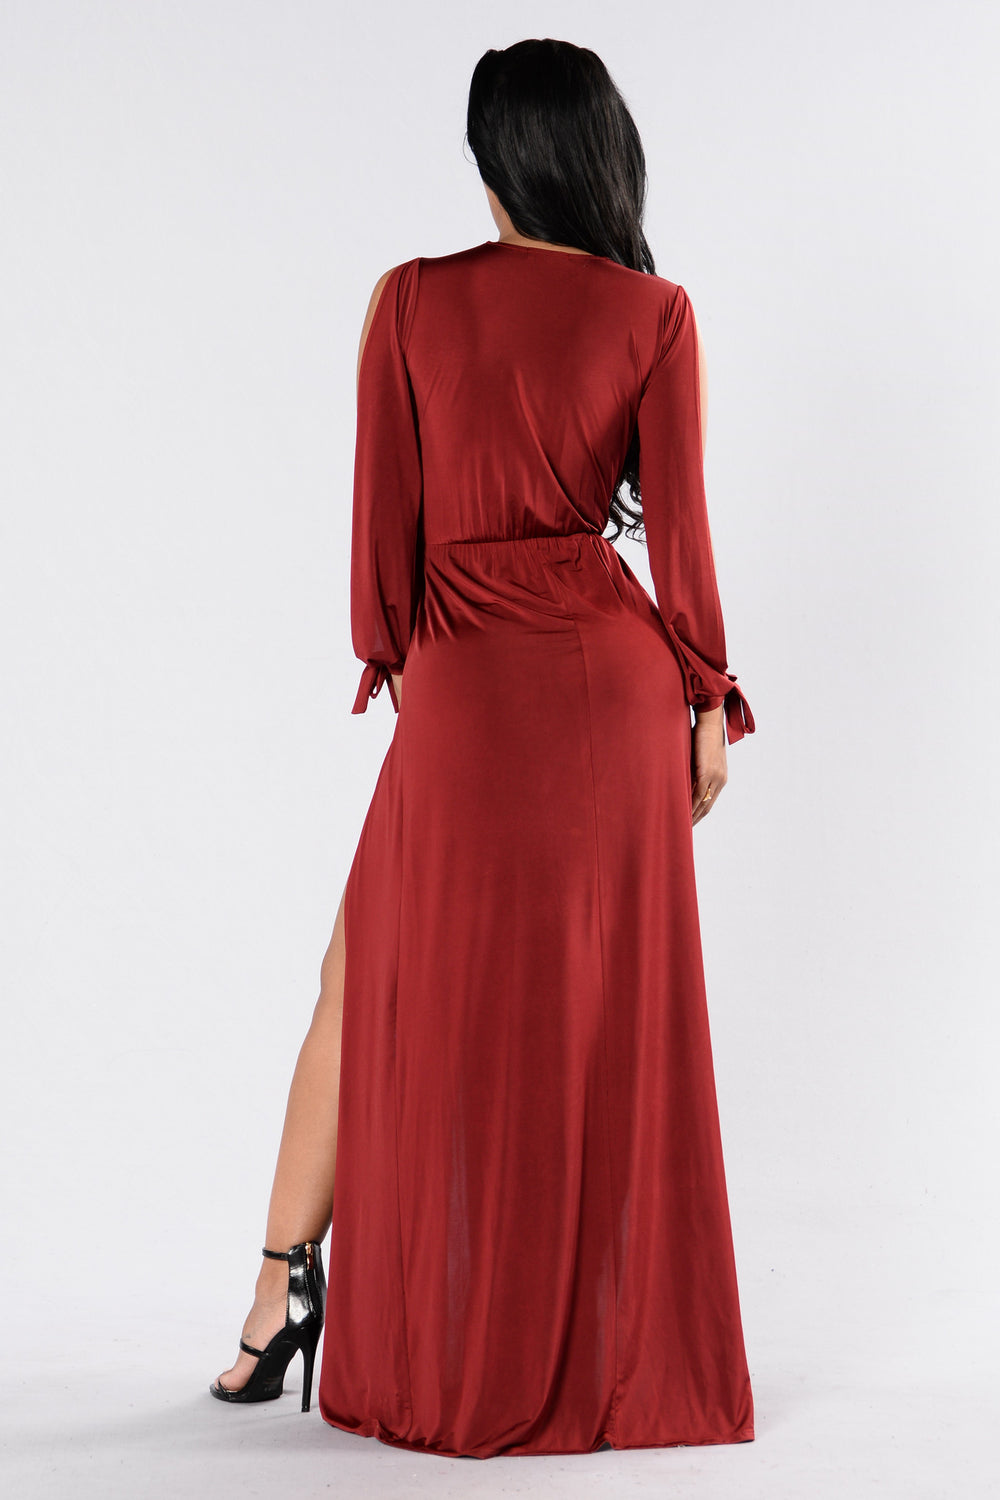 Fly Robin Fly Dress - Burgundy